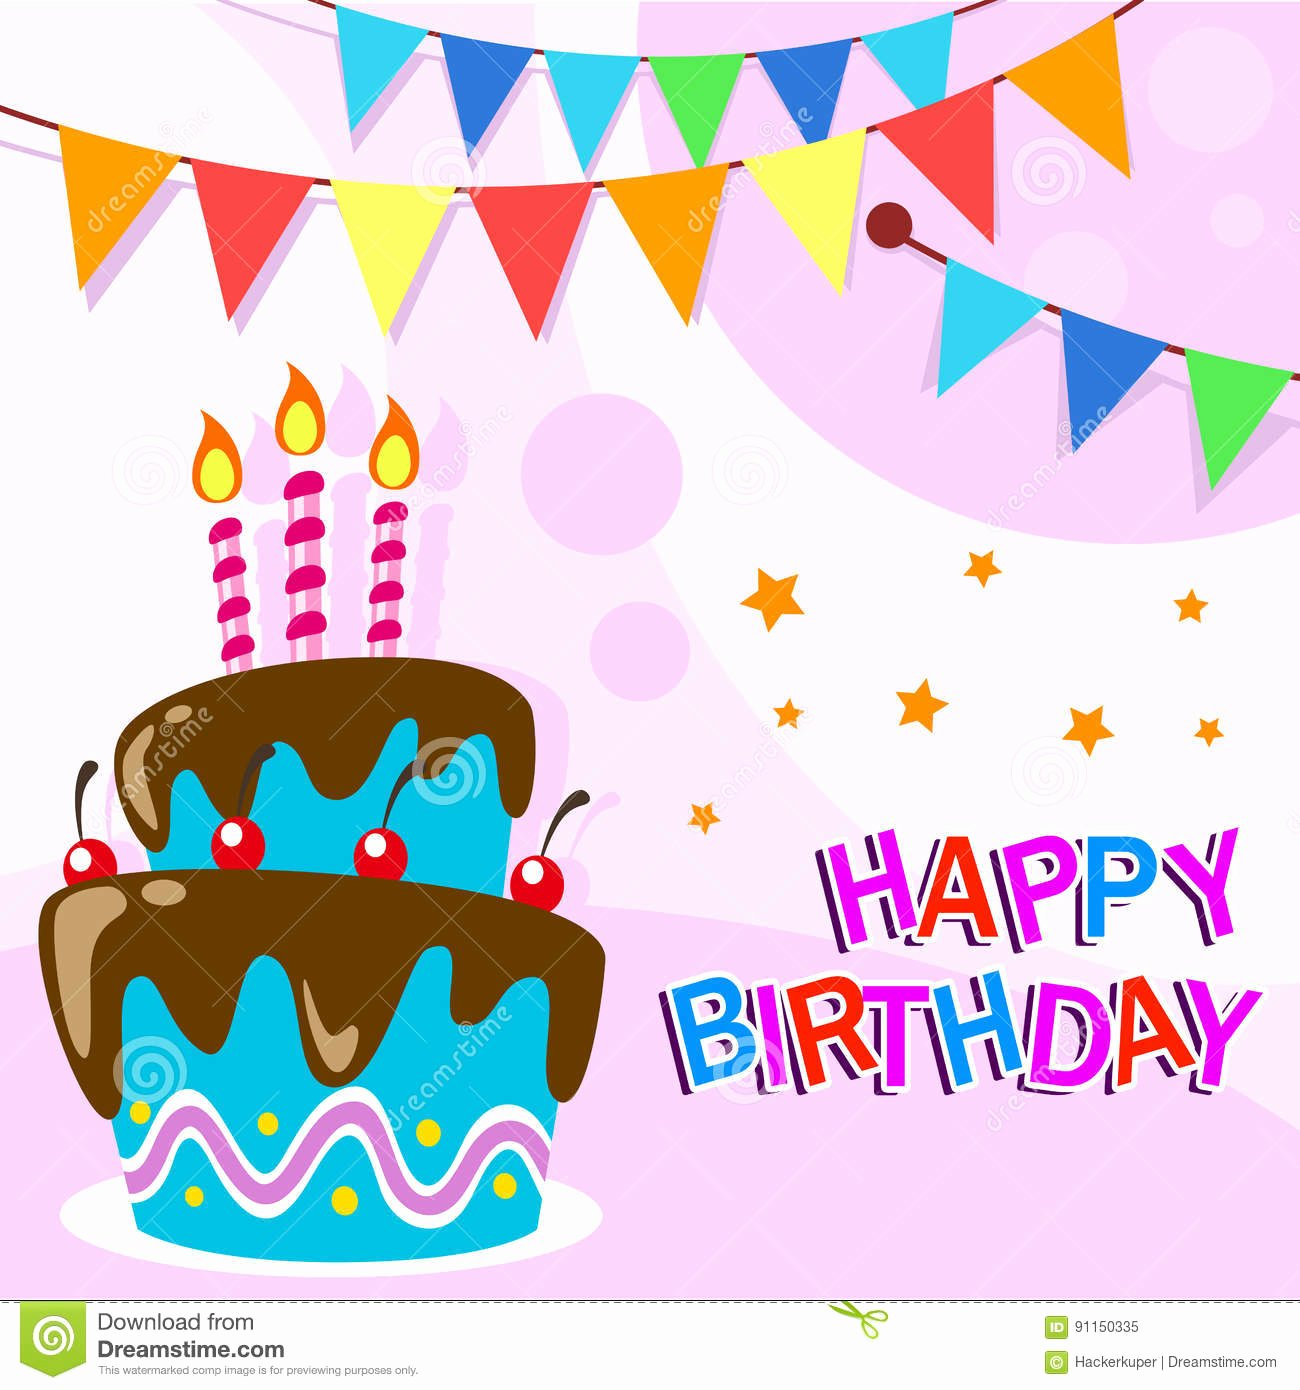 Happy Birthday Template for Cake Fresh Vector Happy Birthday Card Template with Fun Cartoon